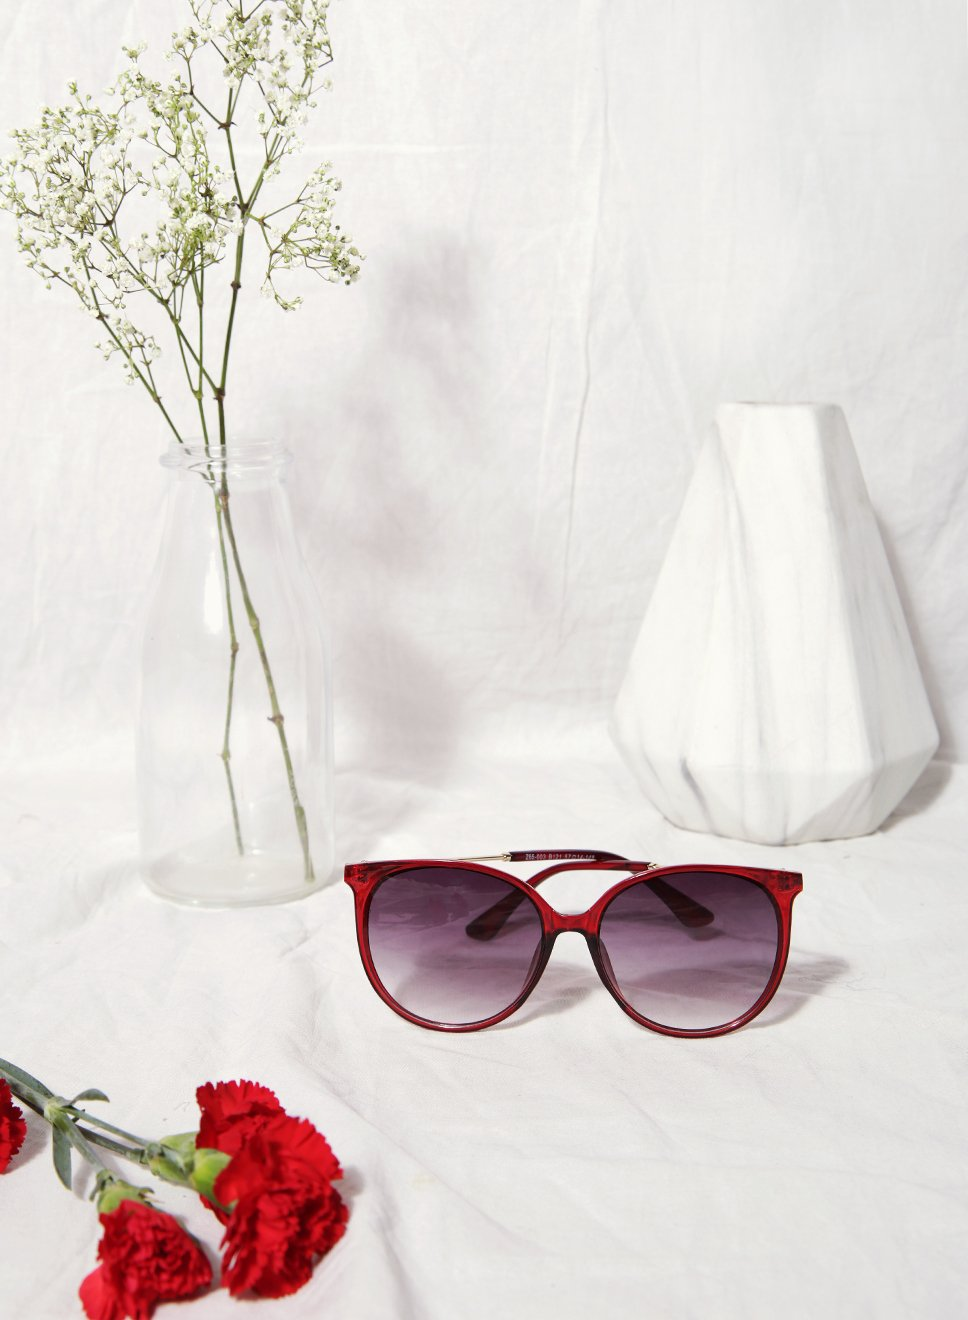 Stella Round Framed Red Sunnies at $ 28.00 only sold at And Well Dressed Online Fashion Store Singapore